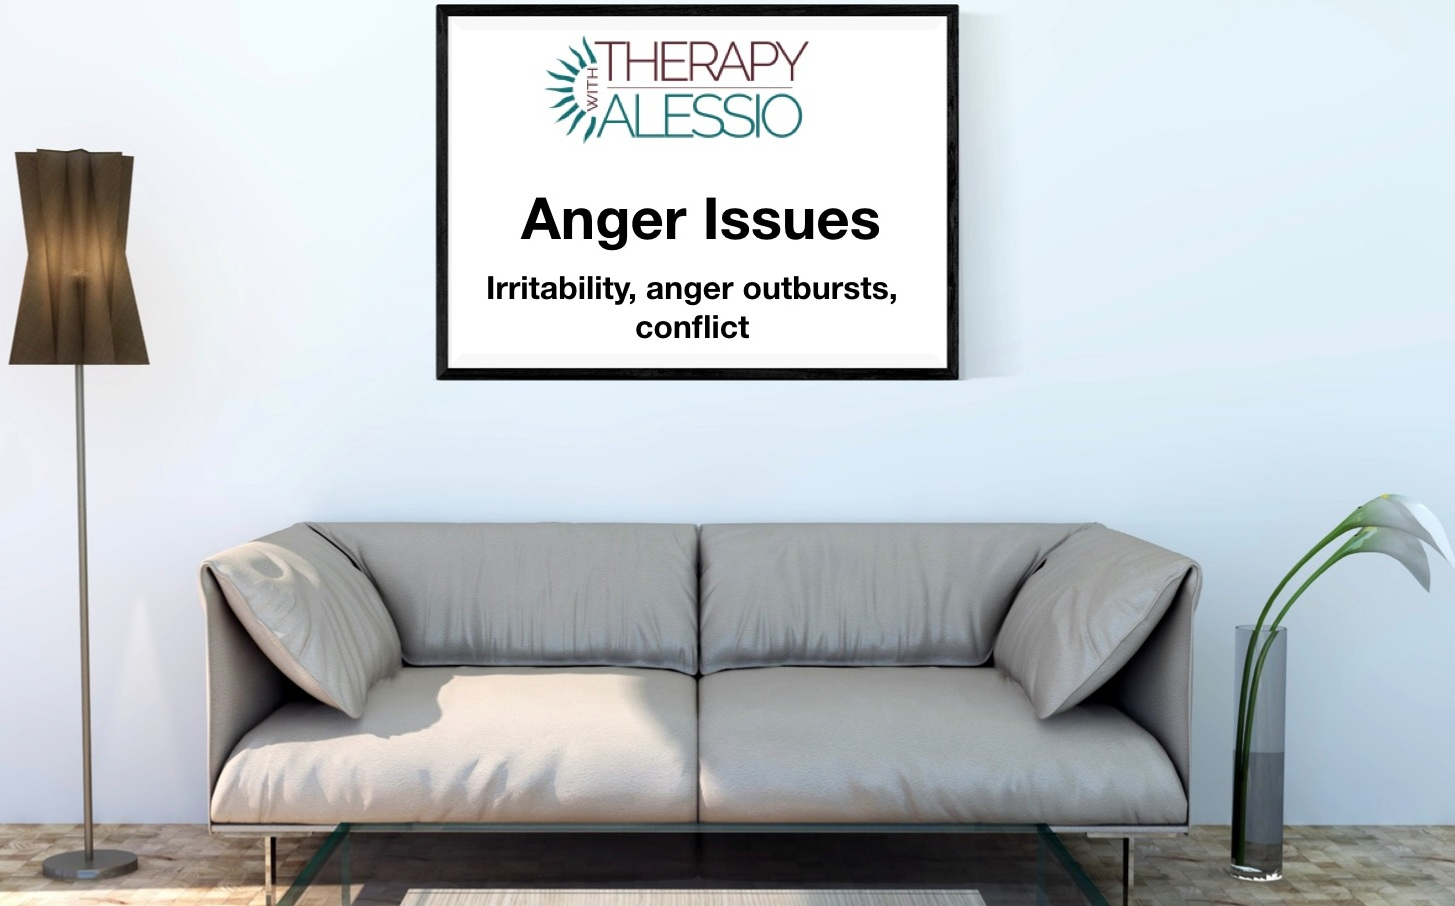 Anger issues